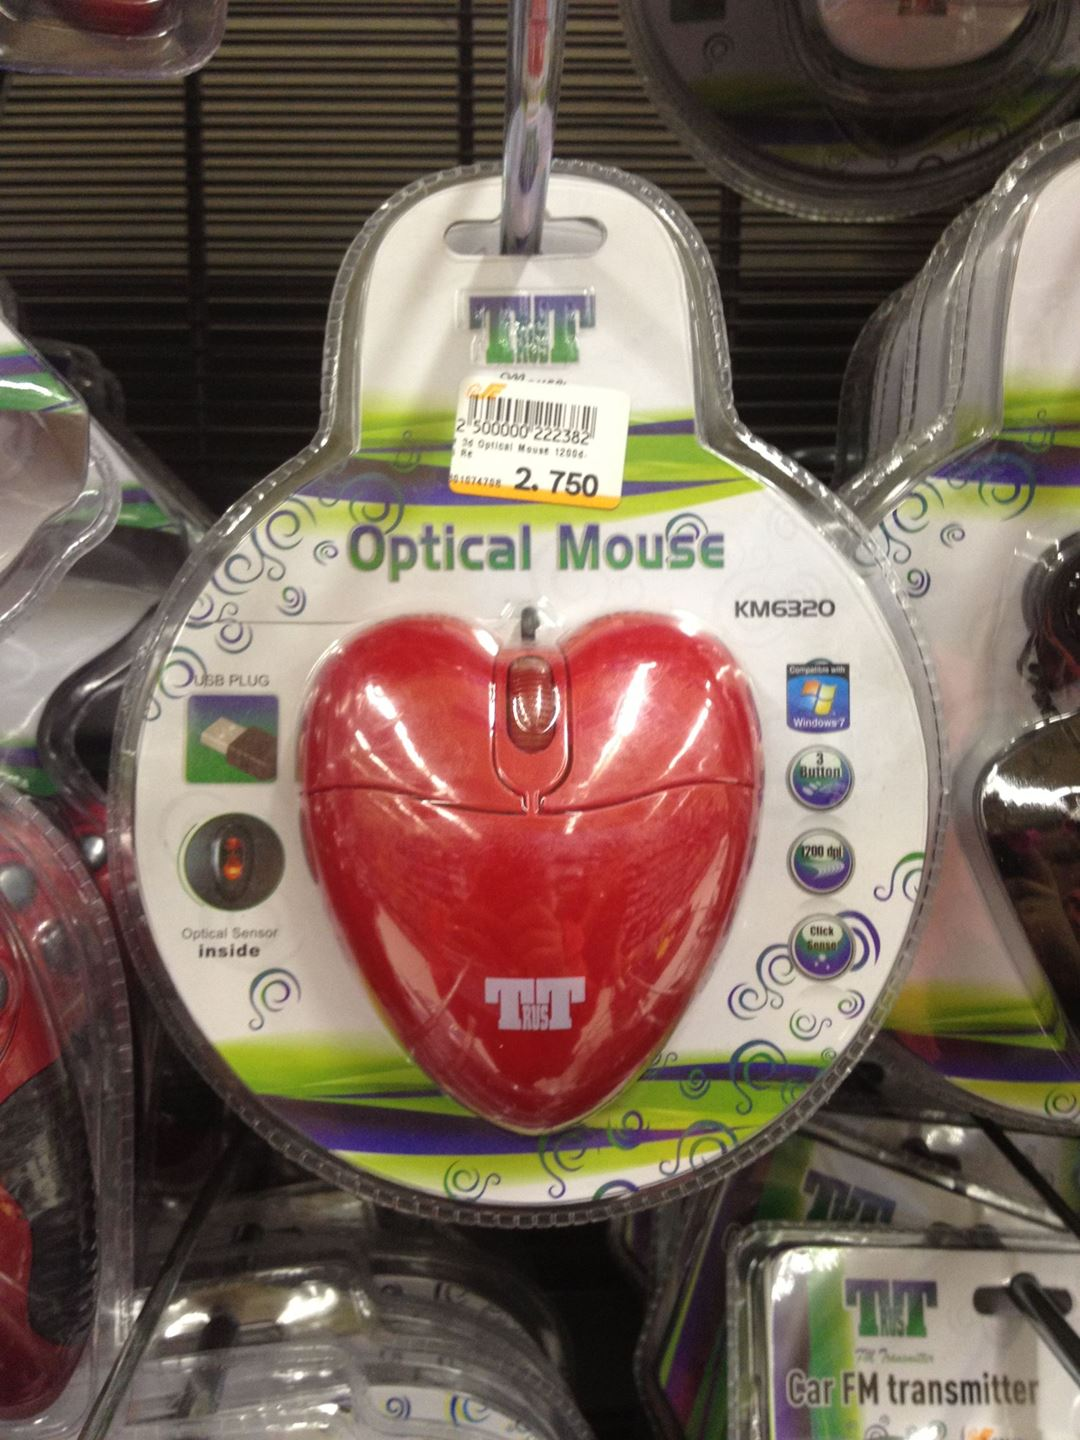 Optical mouse at Sultan Center